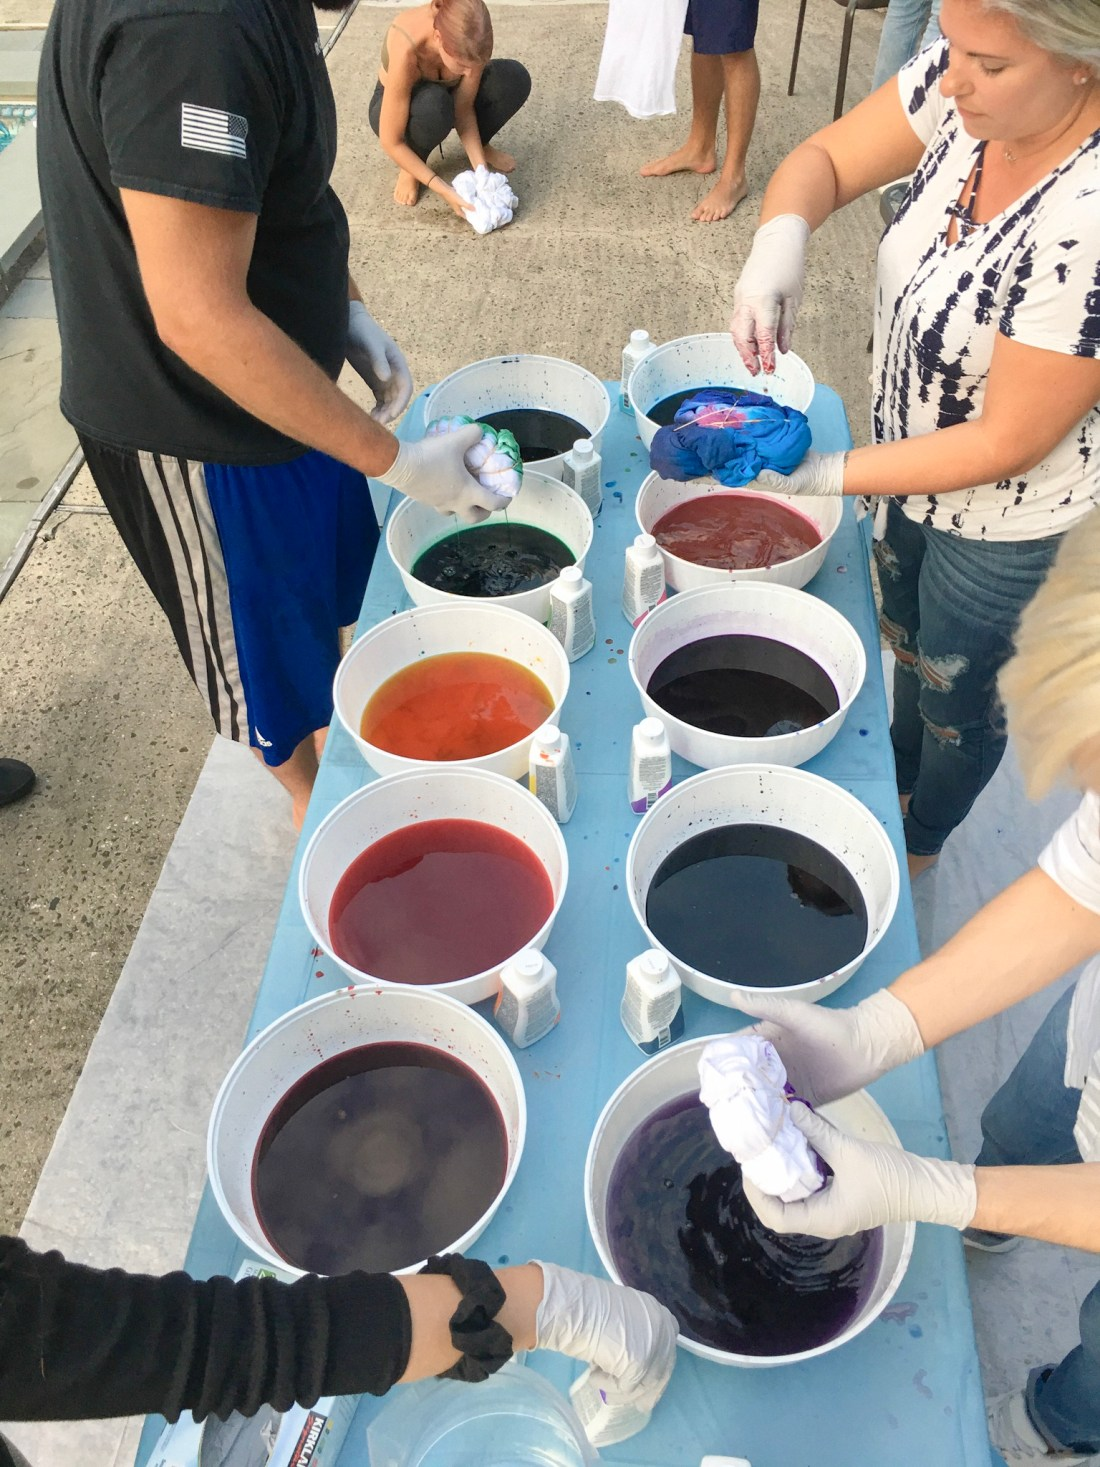 Set up your tie dye station outside, it gets messy!